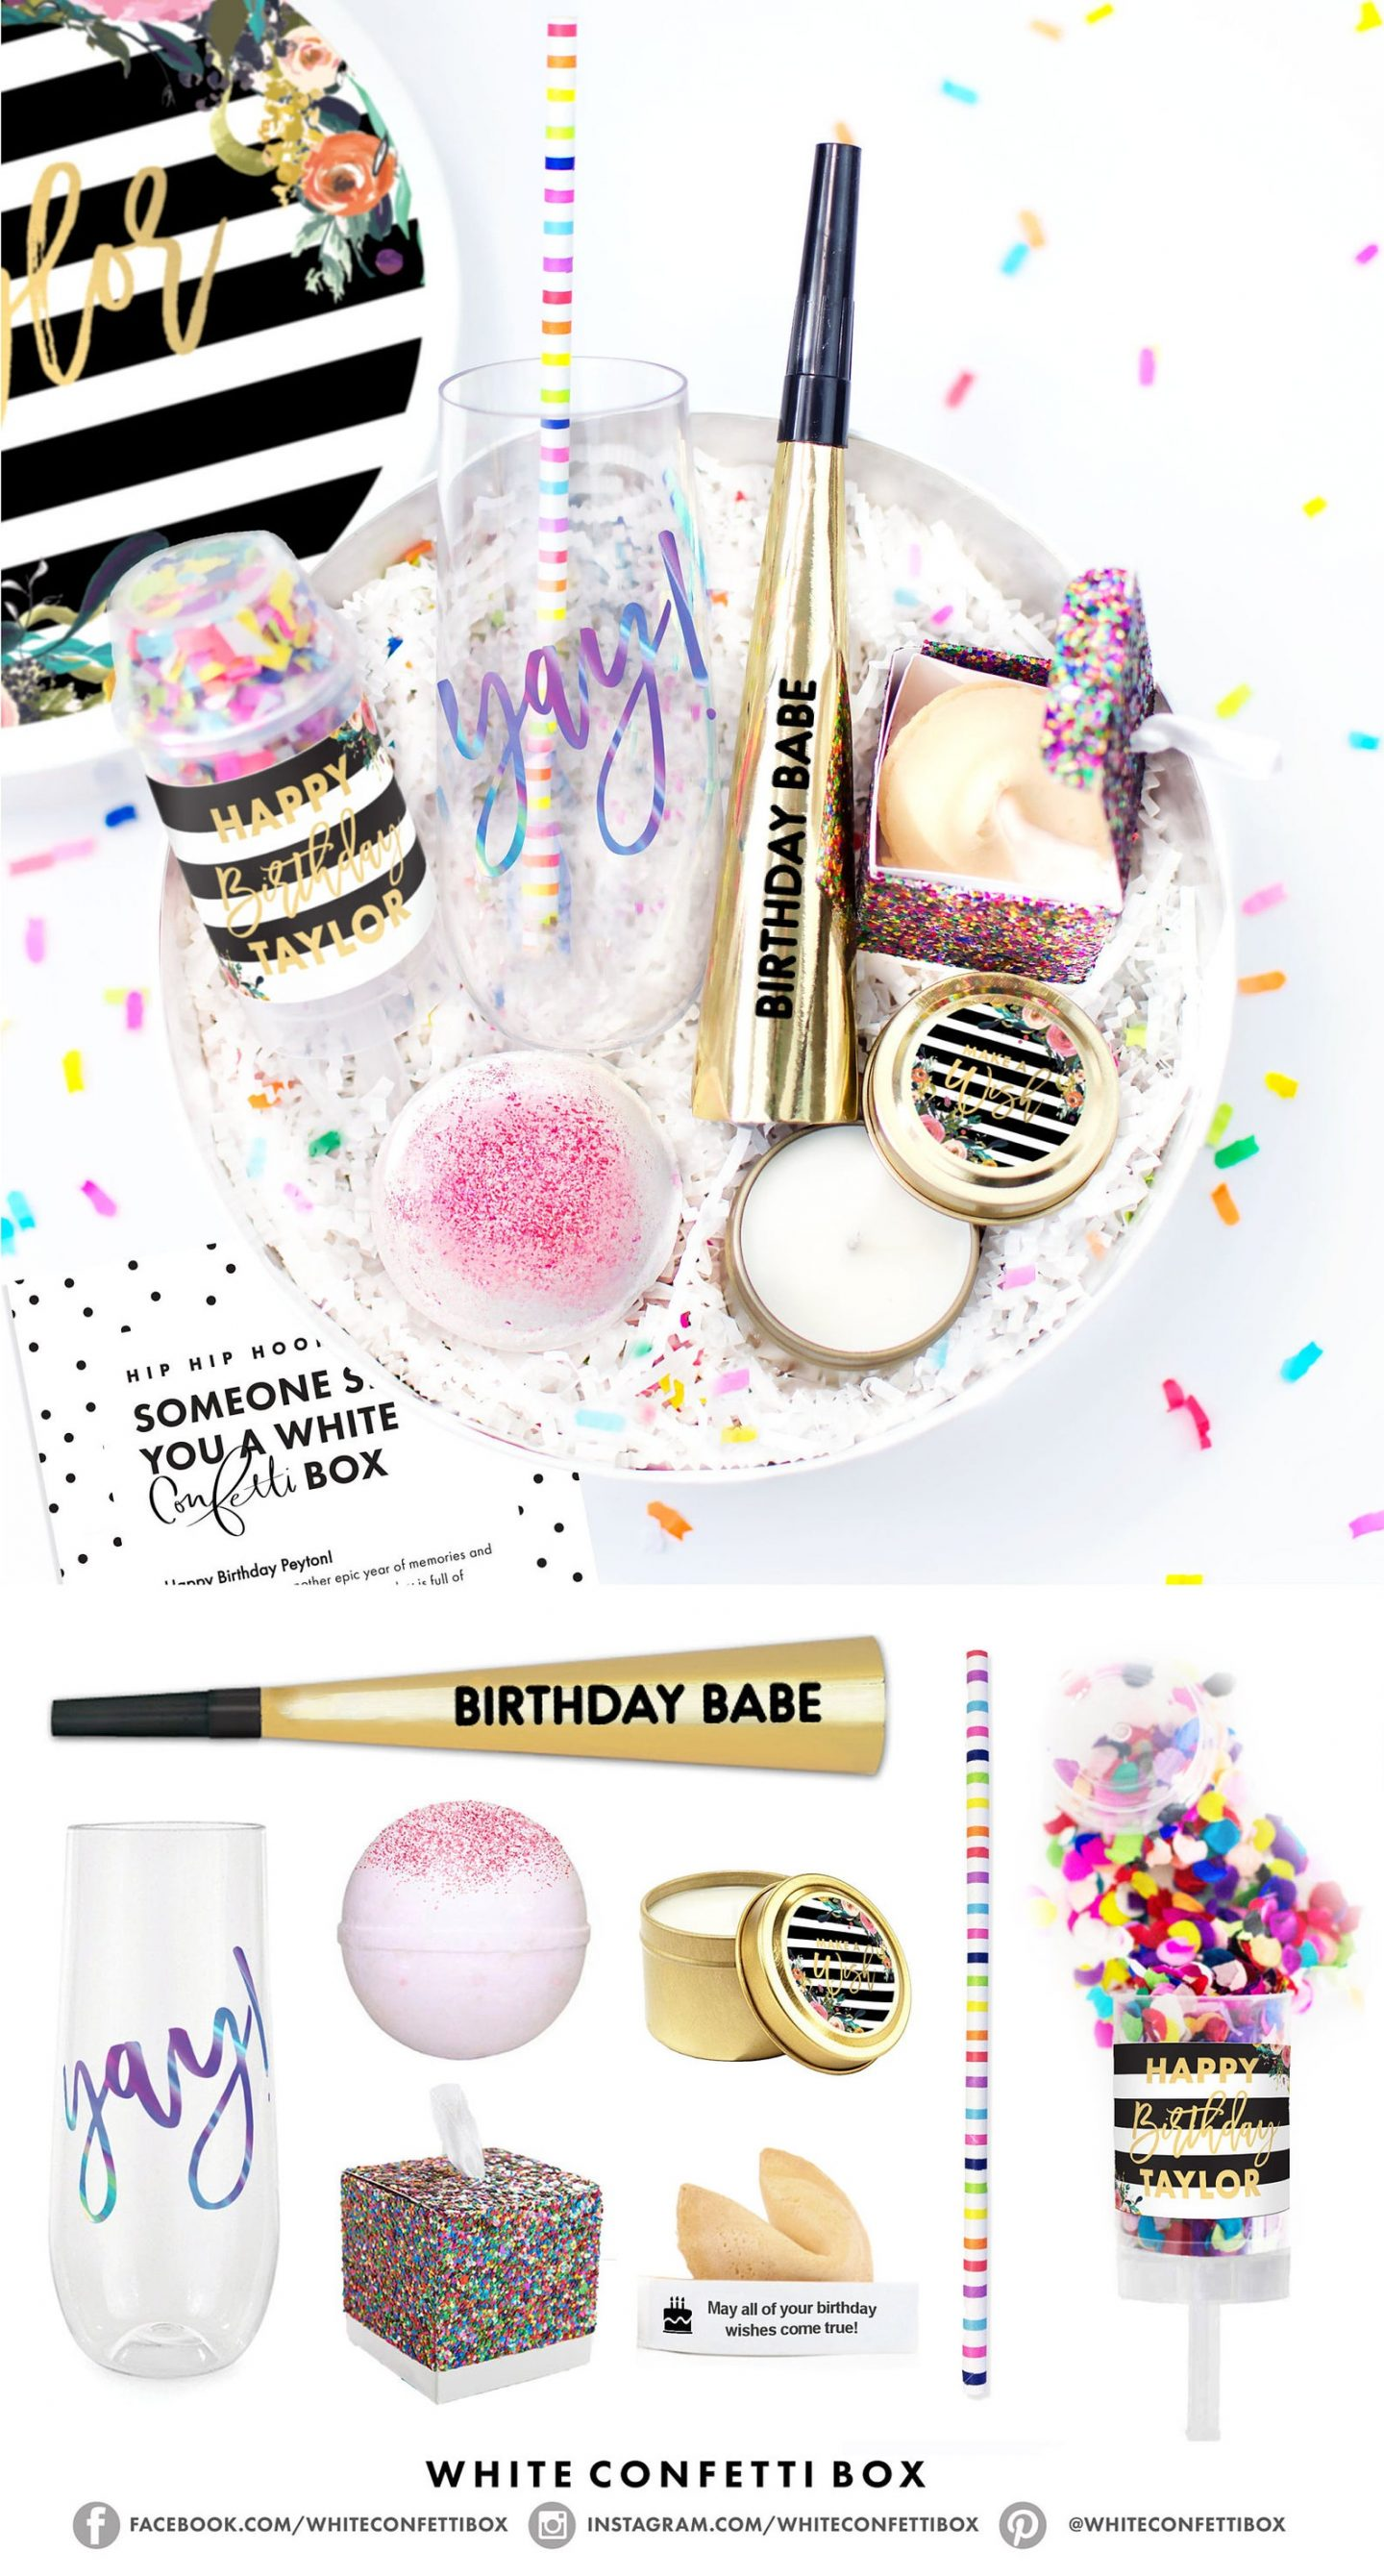 Sweet birthday party bowls with confetti, glasses and poppers